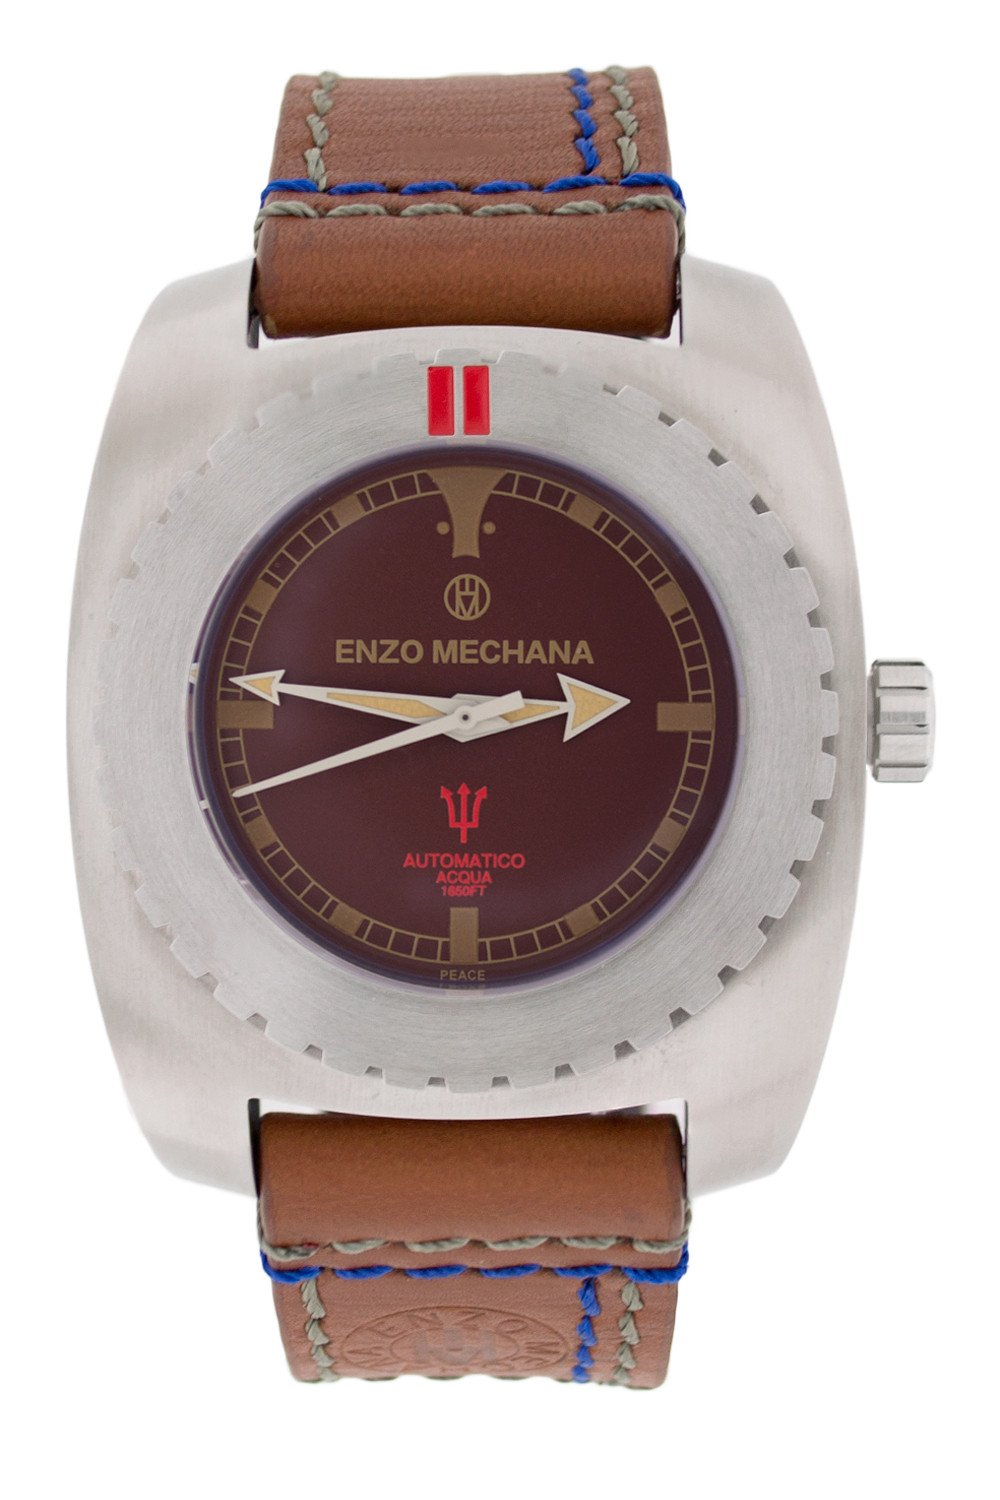 Enzo Mechana ACQUA 500m Automatic Watch - BROWN Dial